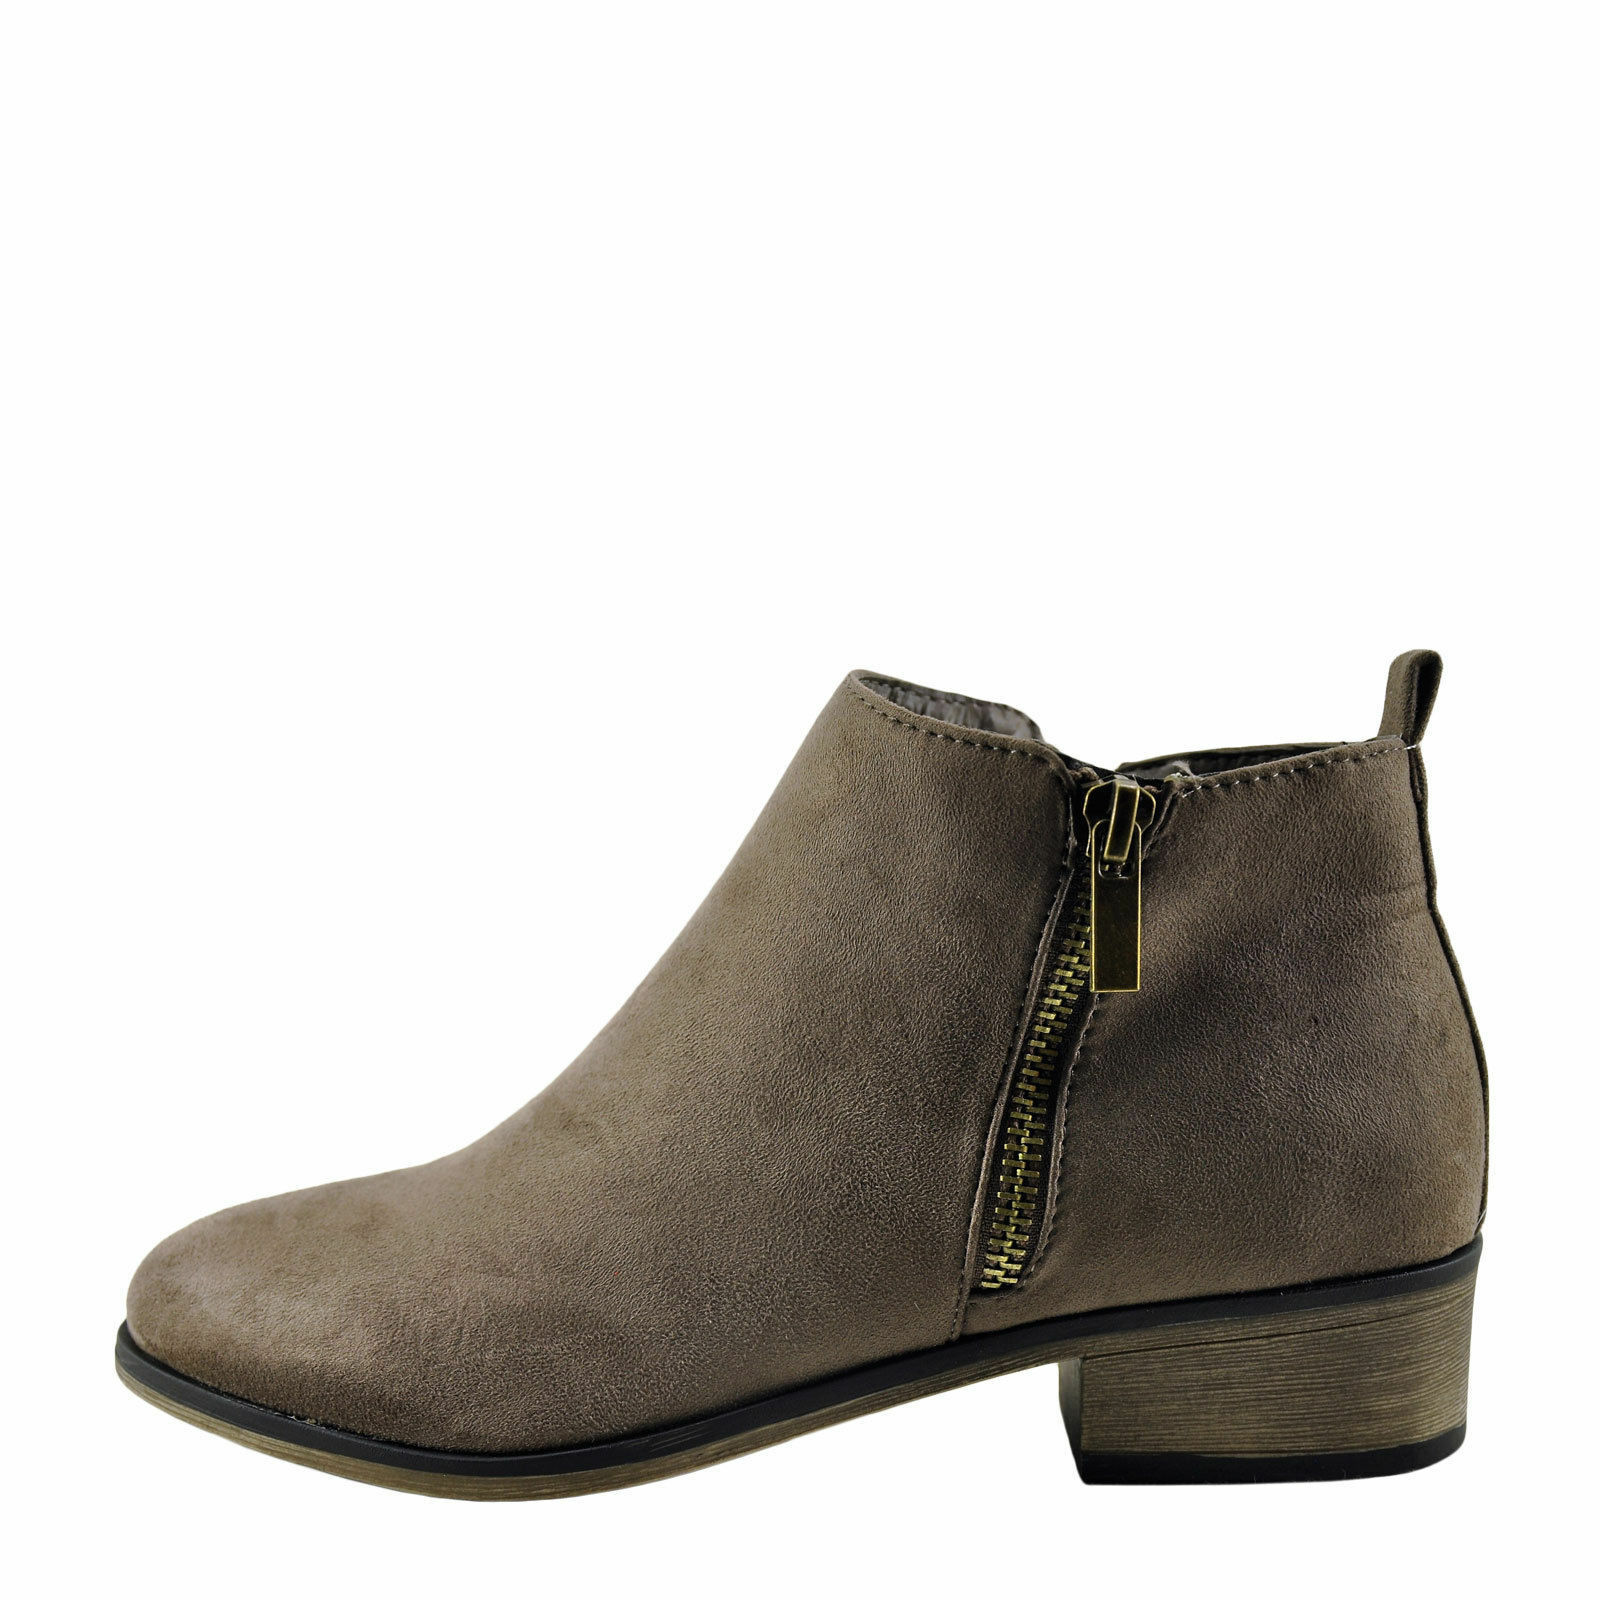 Bamboo Saber 01s Taupe Women's Closed Toe Zipper Accent Ankle Bootie